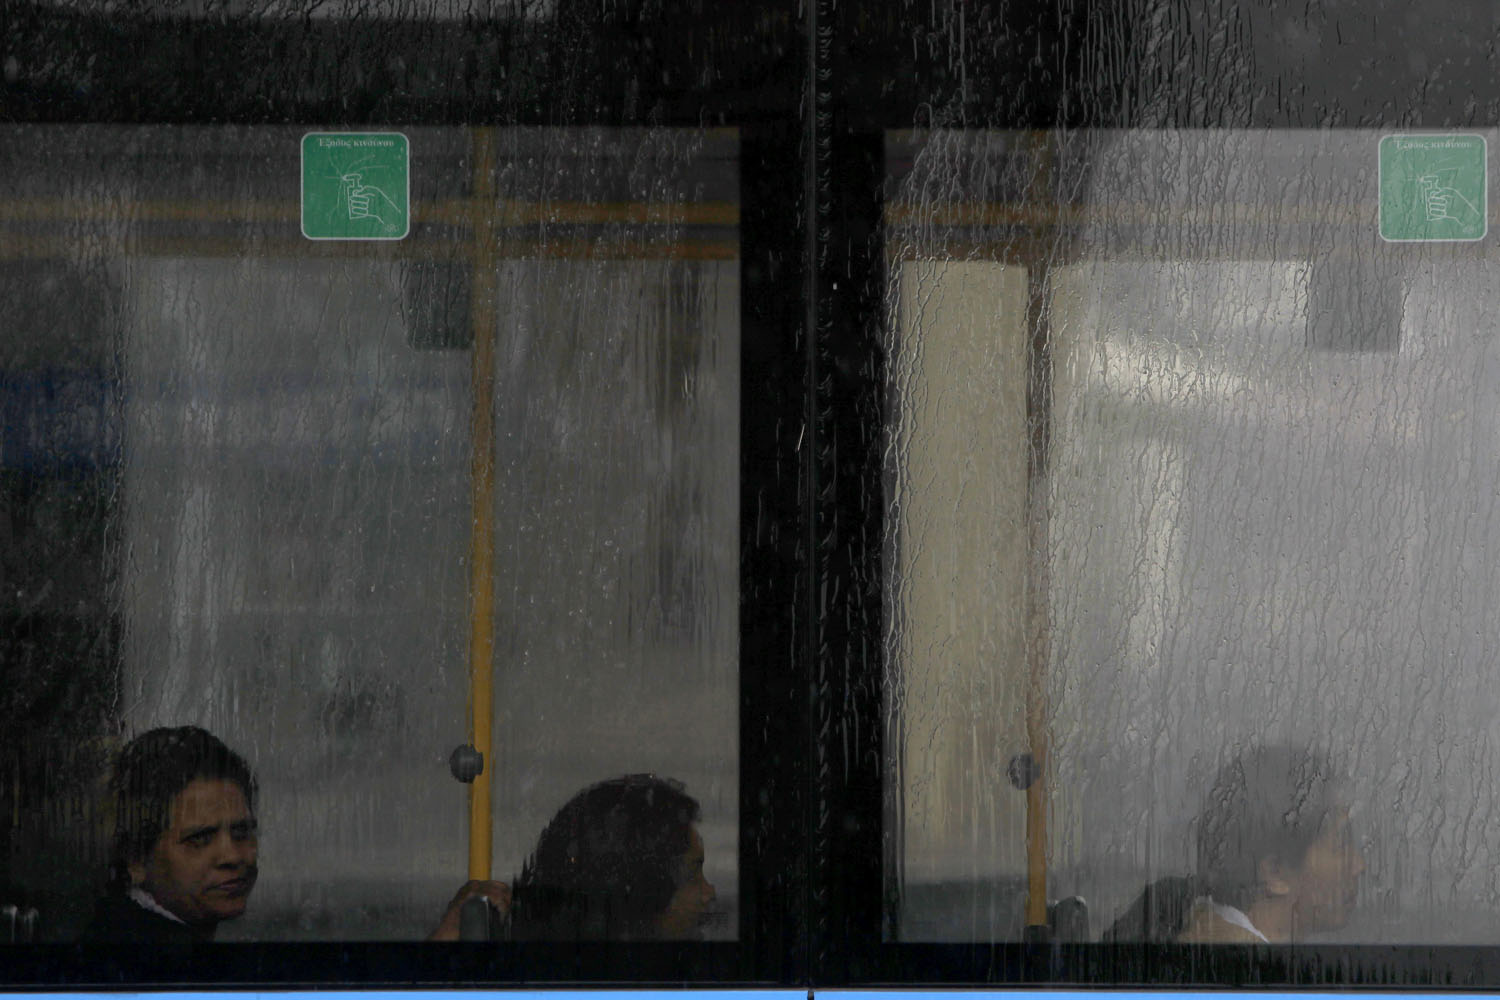 May 8, 2014. Immigrant women sit in a moving bus with rain streaking across the window during heavy rain fall in the Cypriot capital Nicosia.